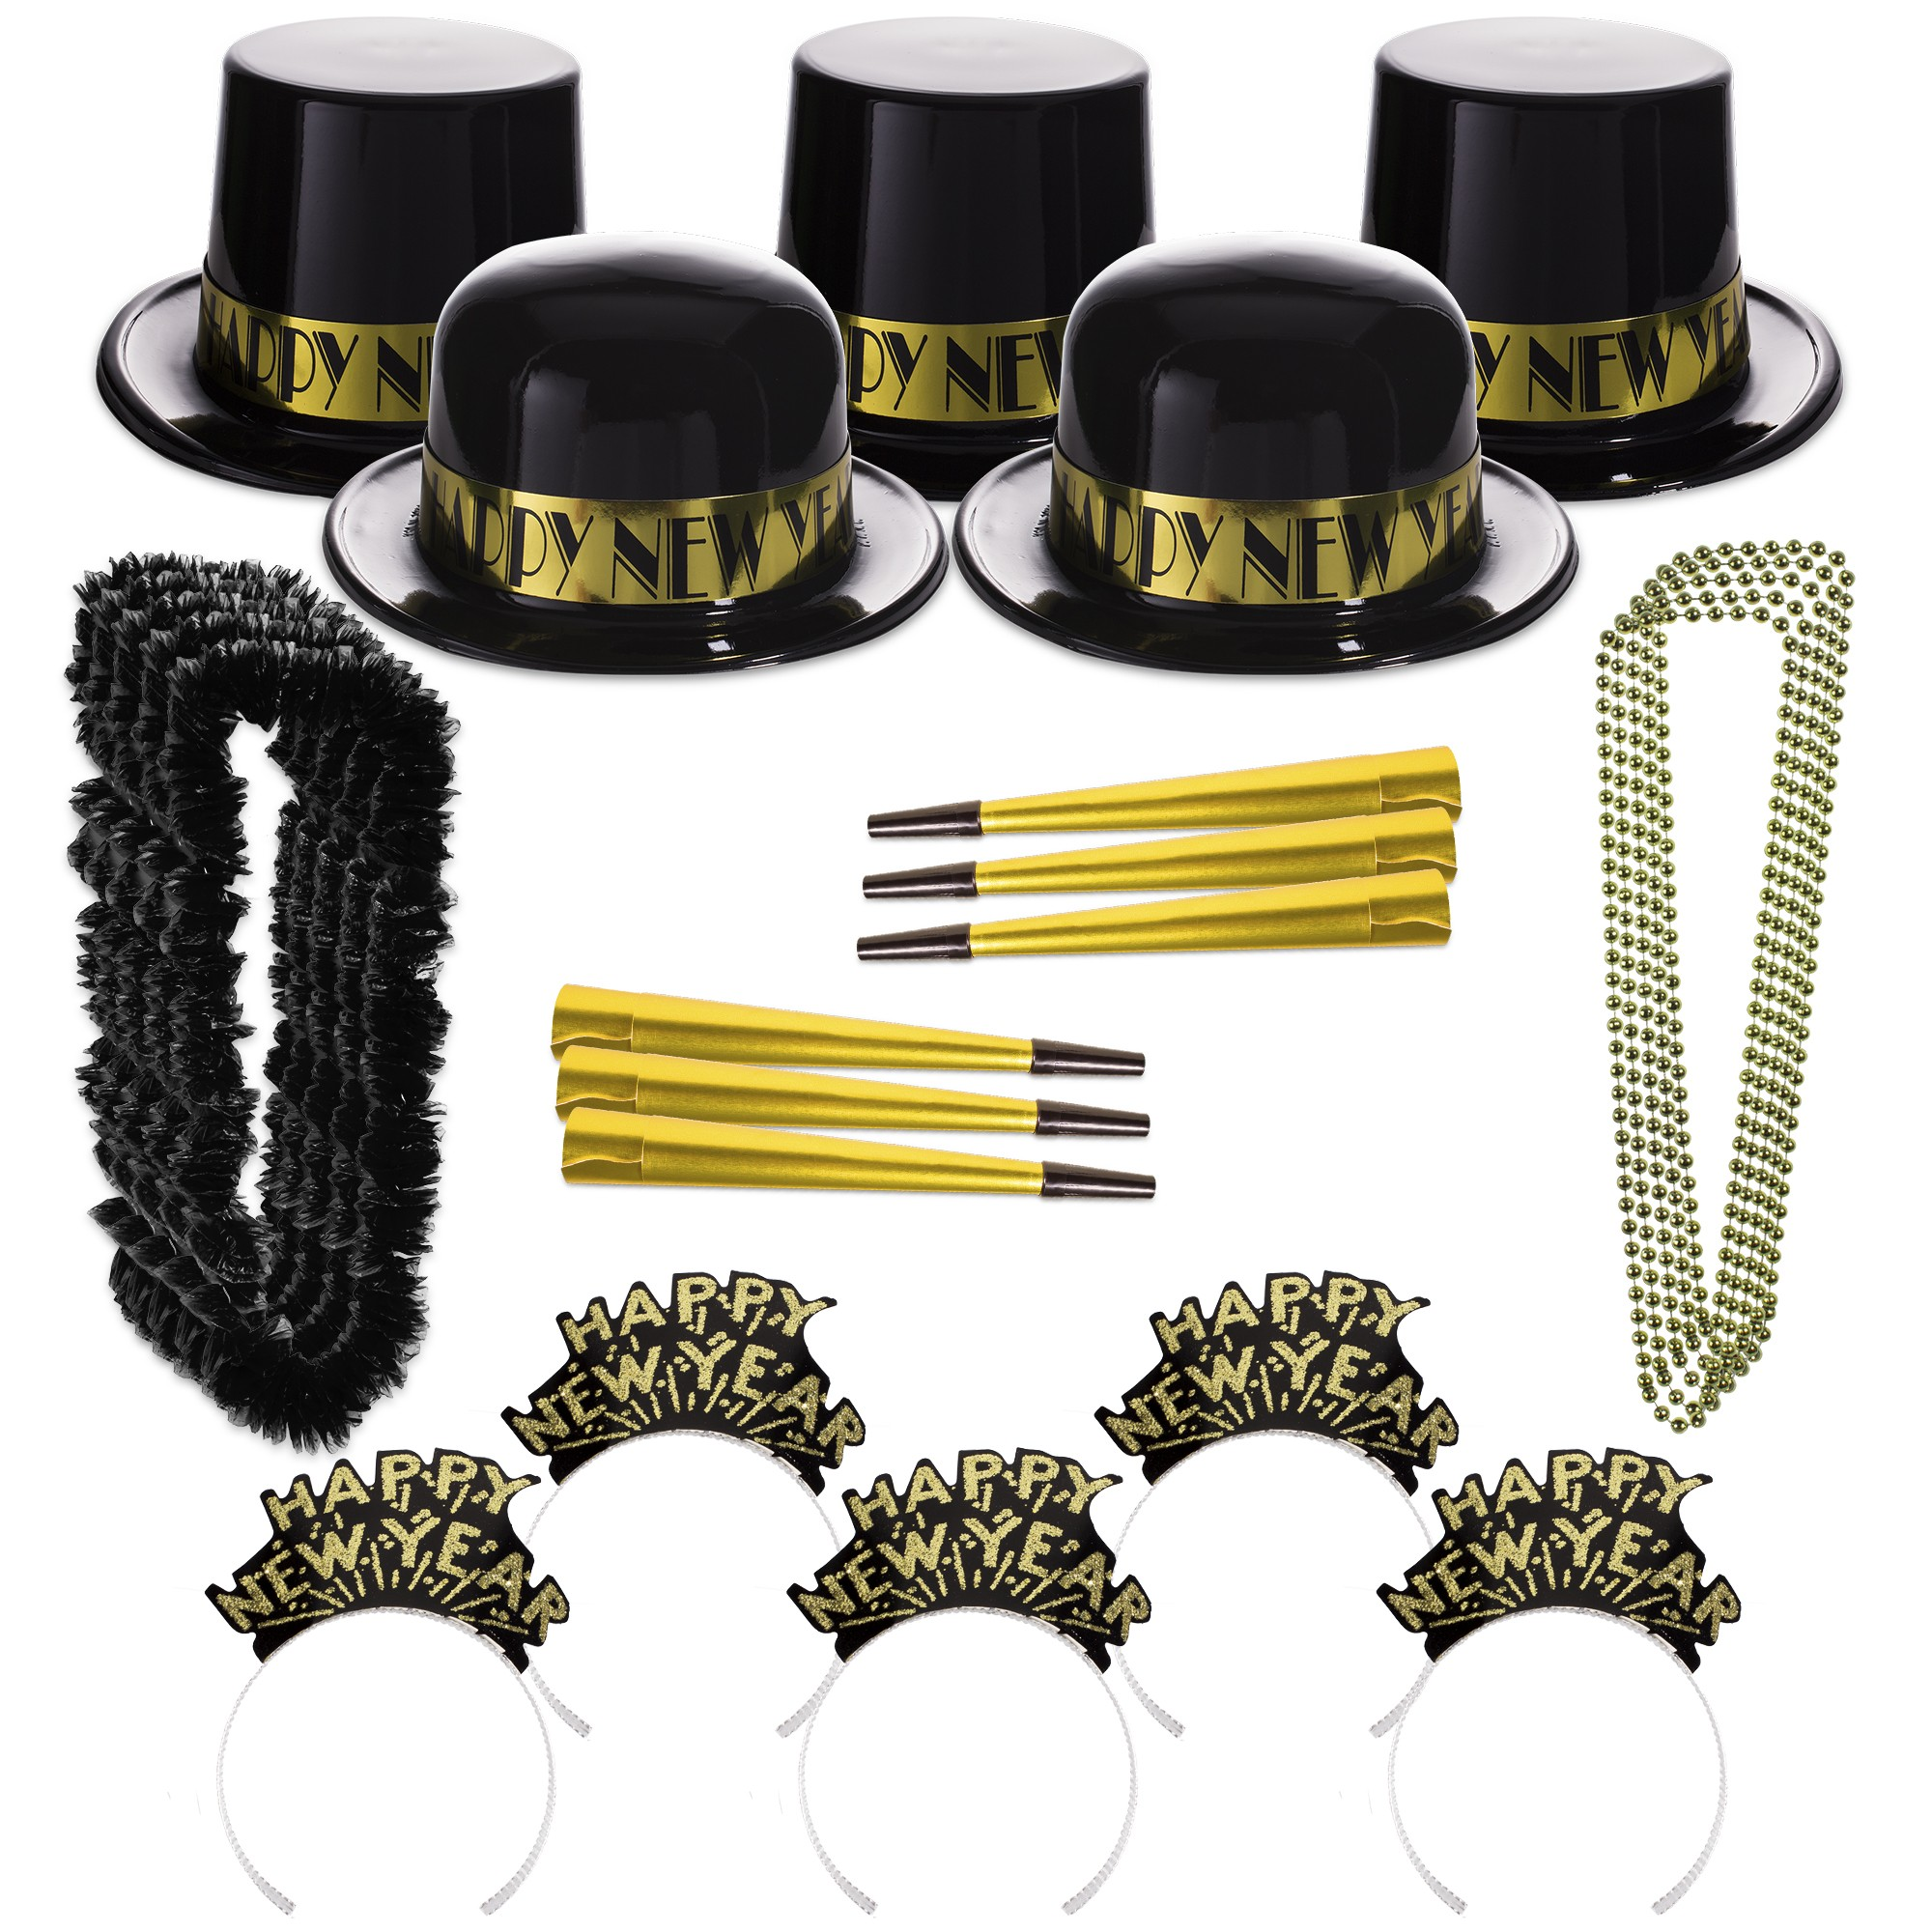 Gold Showboat New Year's Eve Party Kit for 100 People